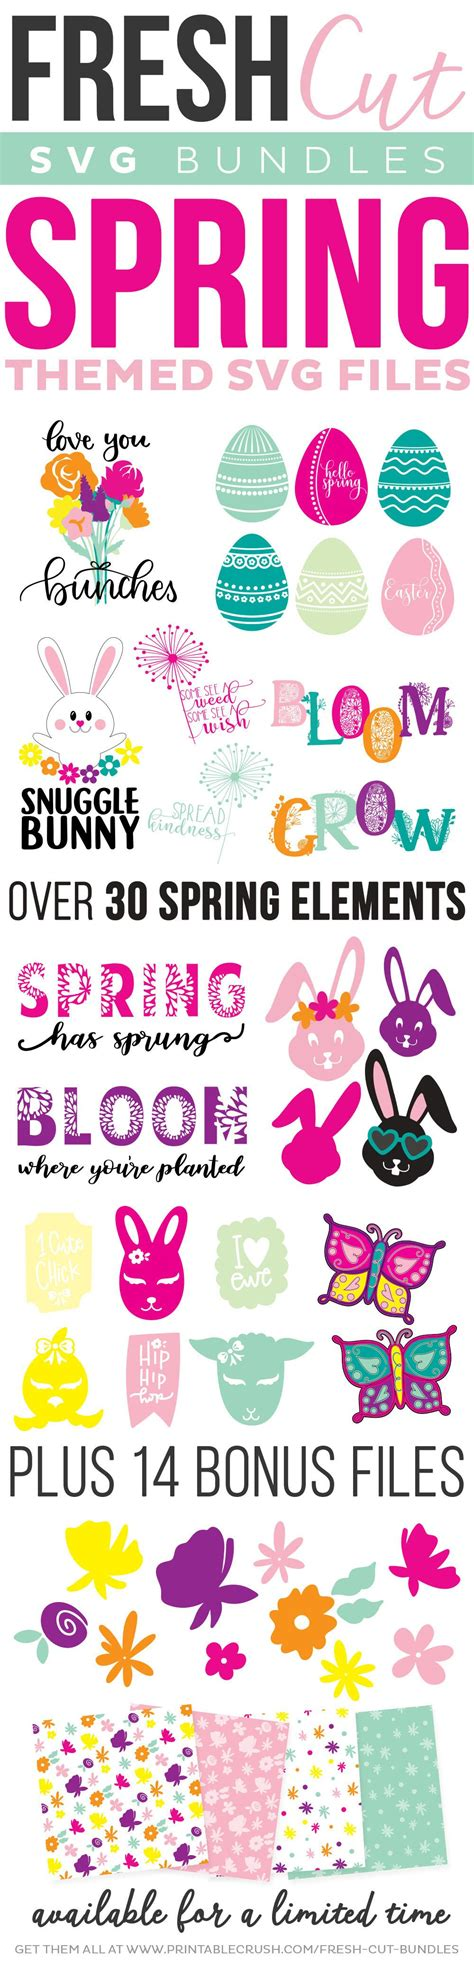 Kids young and old love it! 7 Creative Spring SVG Craft Ideas in 2020 | Cricut, Cricut ...